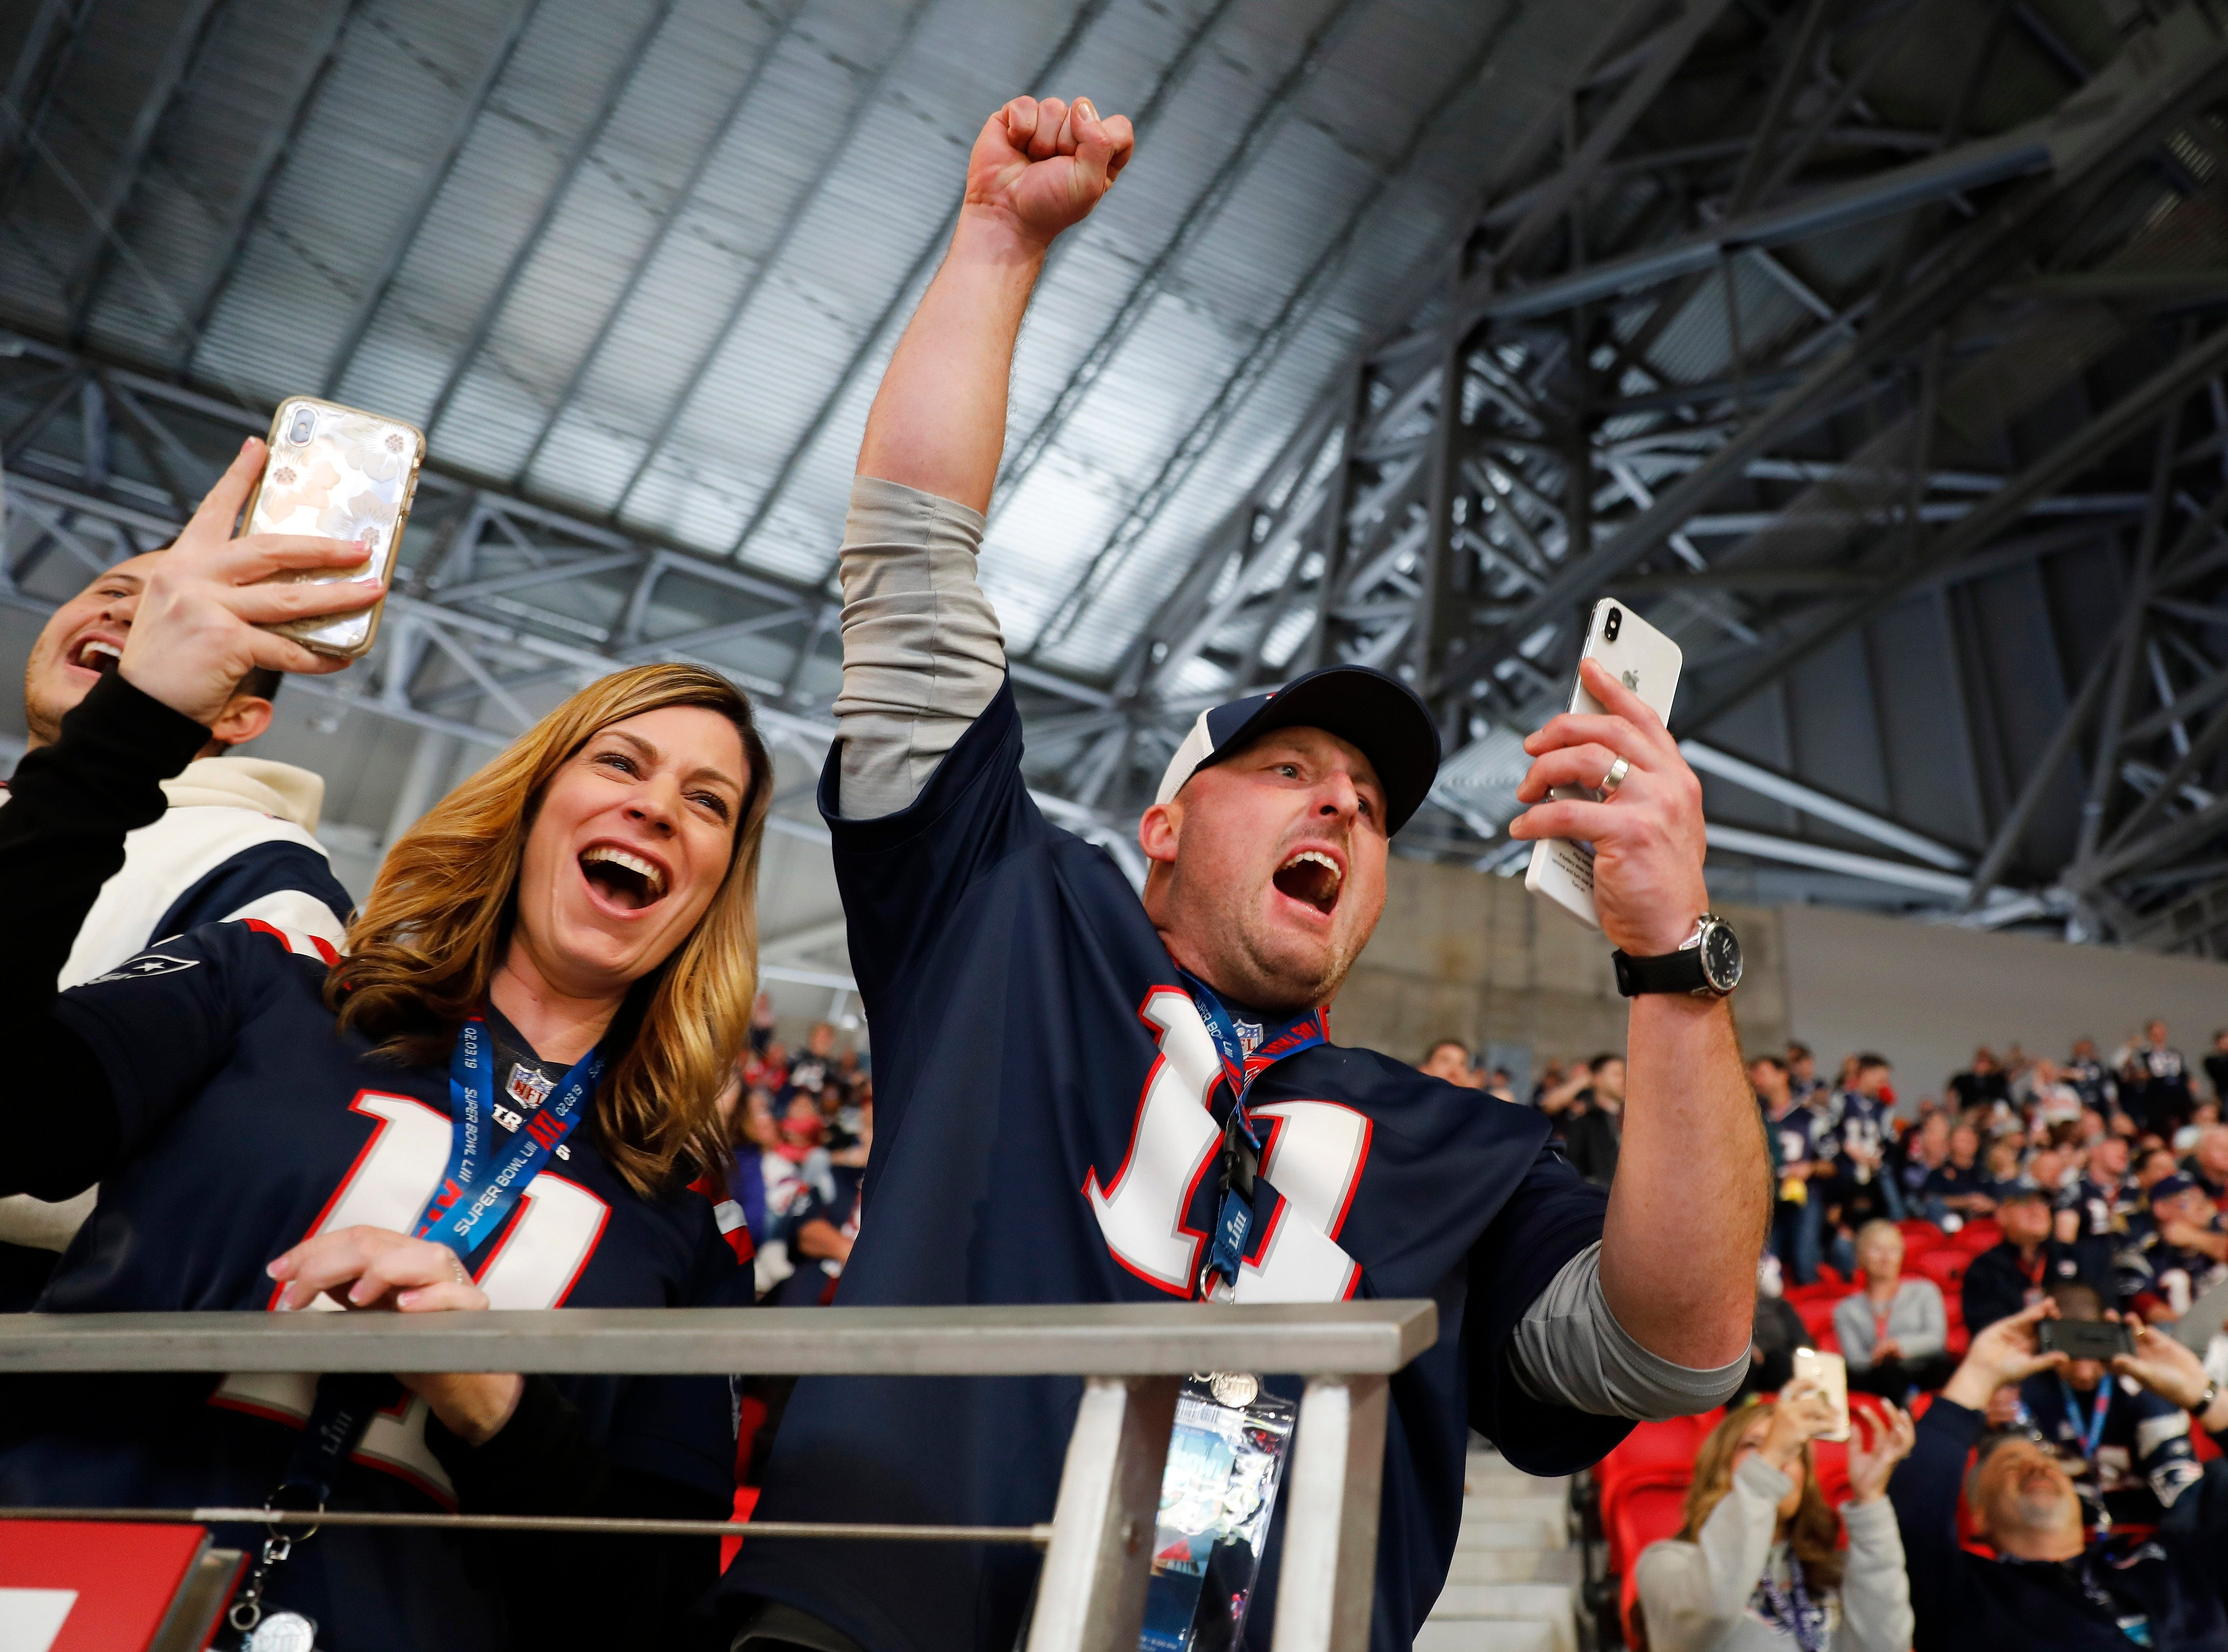 Todd and Kimberly Hildebrand cheer as New England Patriots' Tom Brady takes the field before the NFL Super Bowl 53 football game between the Los Angeles Rams and the New England Patriots, Sunday, Feb. 3, 2019, in Atlanta. (AP Photo/David Goldman)